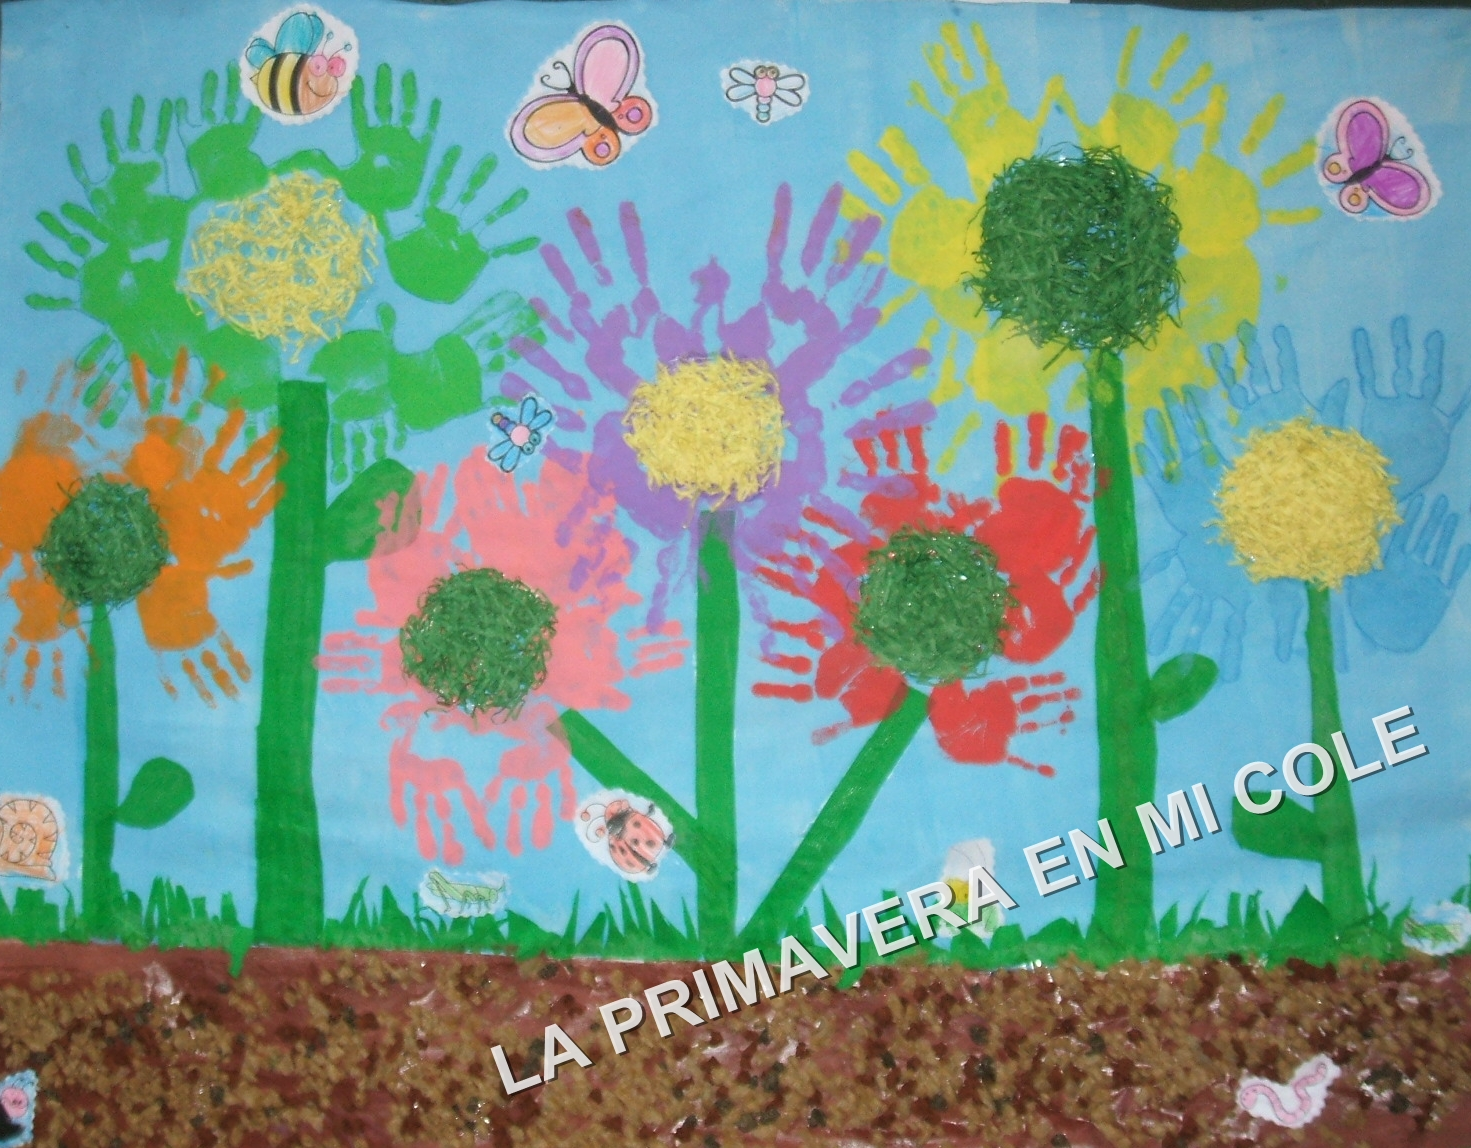 Murales primavera 8 imagenes educativas for Murales infantiles para pared